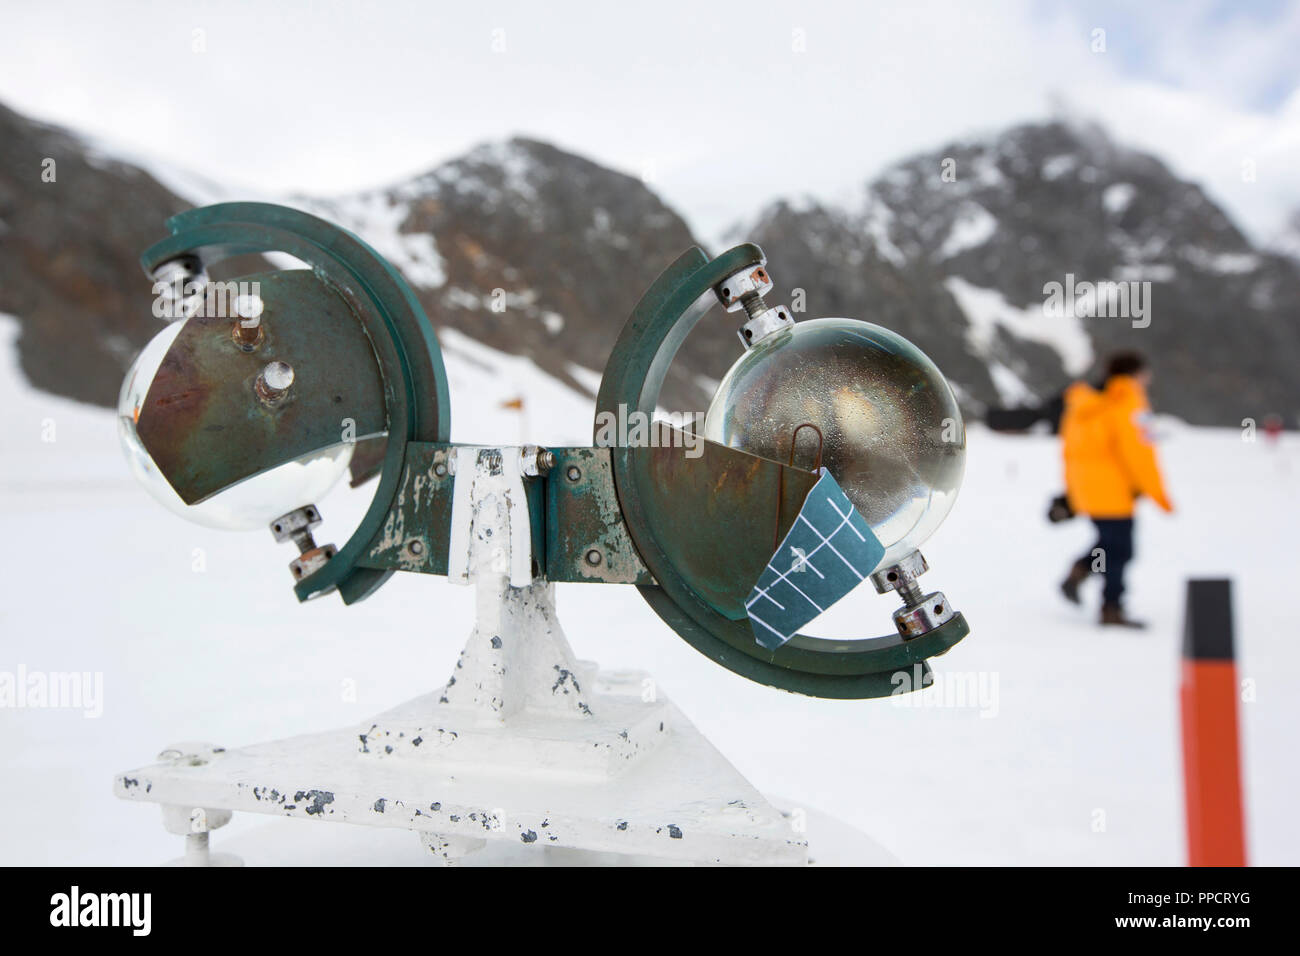 A Campbell Stokes Sunshine Recorder, which measures hours of sunlight at Base Orcadas, which is an Argentine scientific station in Antarctica, and the oldest of the stations in Antarctica still in operation. It is located on Laurie Island, one of the South Orkney Islands, just off the Antarctic Peninsula. The Antarctic Peninsula is one of the fastest warming places on the planet. Stock Photo